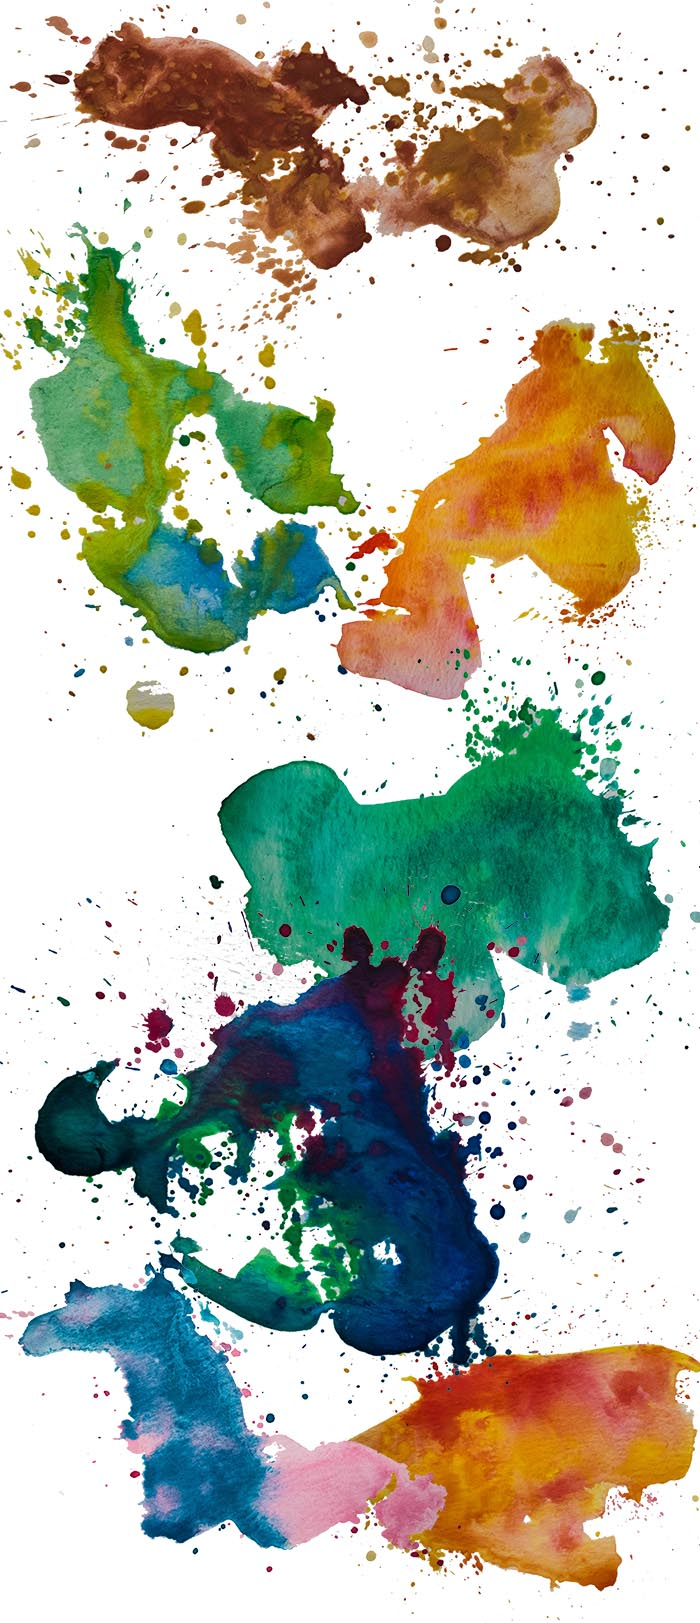 Galaxy Colors Collection: 1604 Elements - $29 ONLY - Watercolor 33